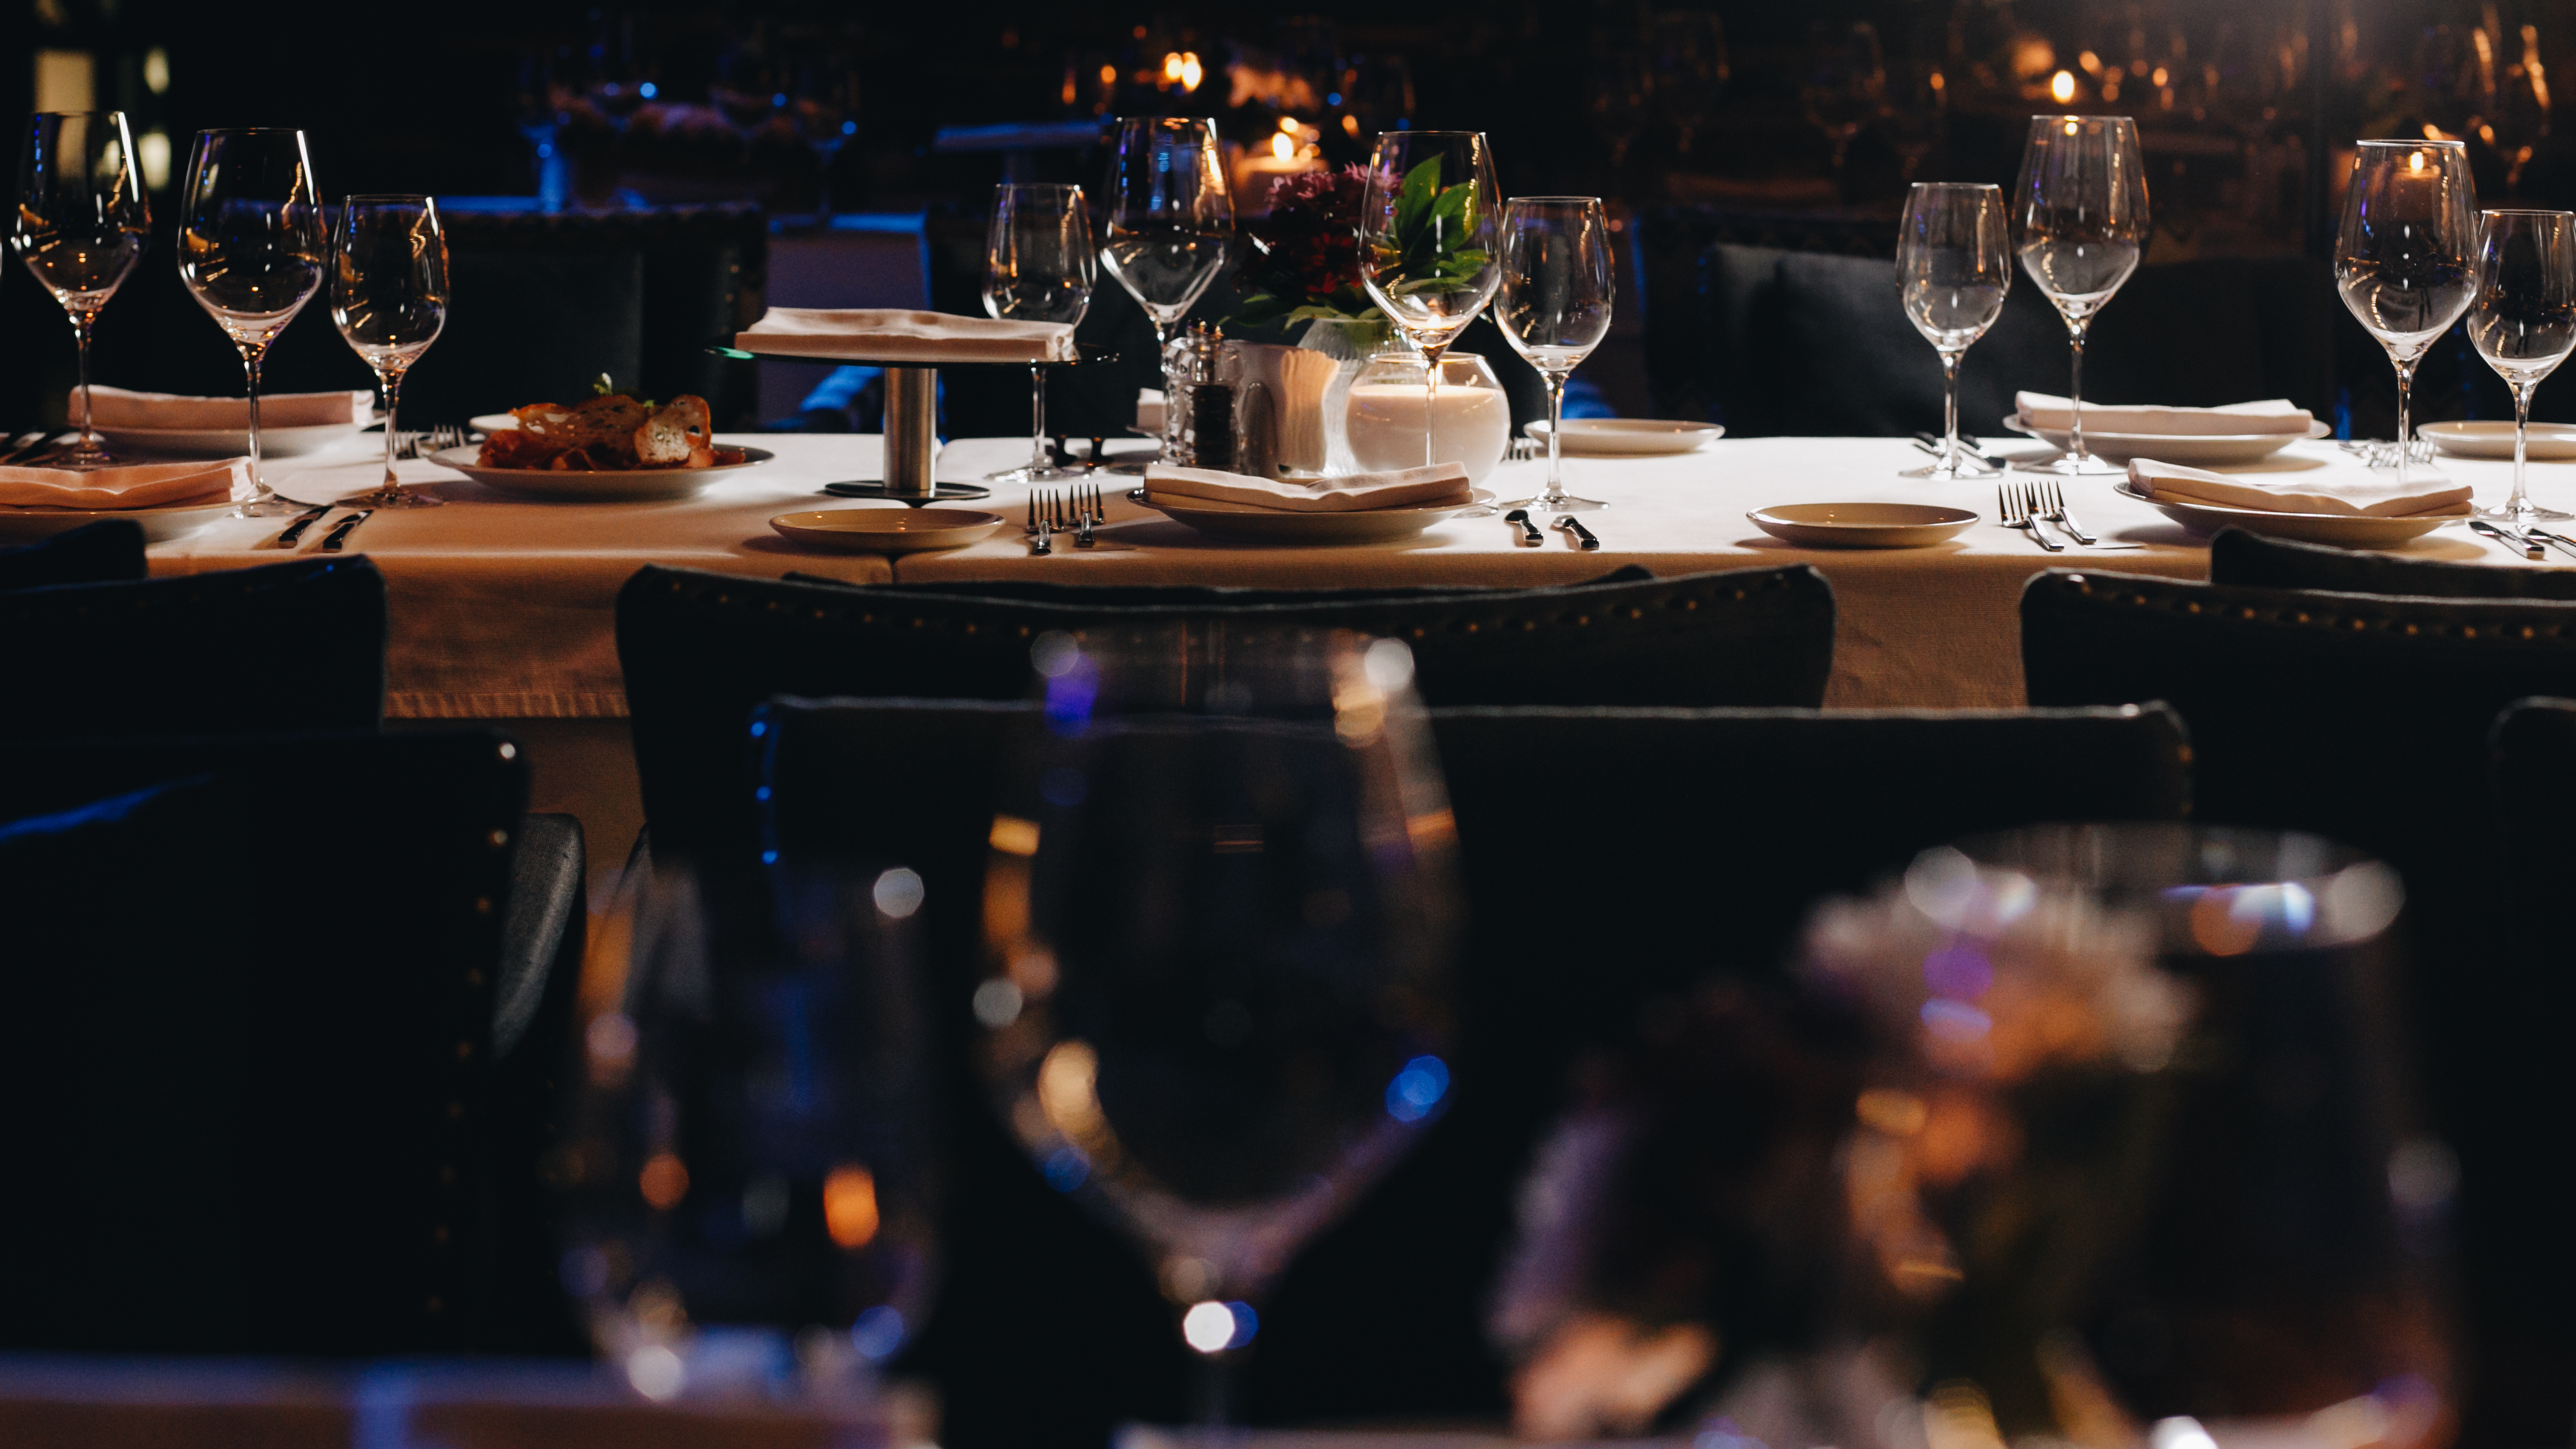 Empty tables with settings and wine glasses in a dining room that's moodily lit